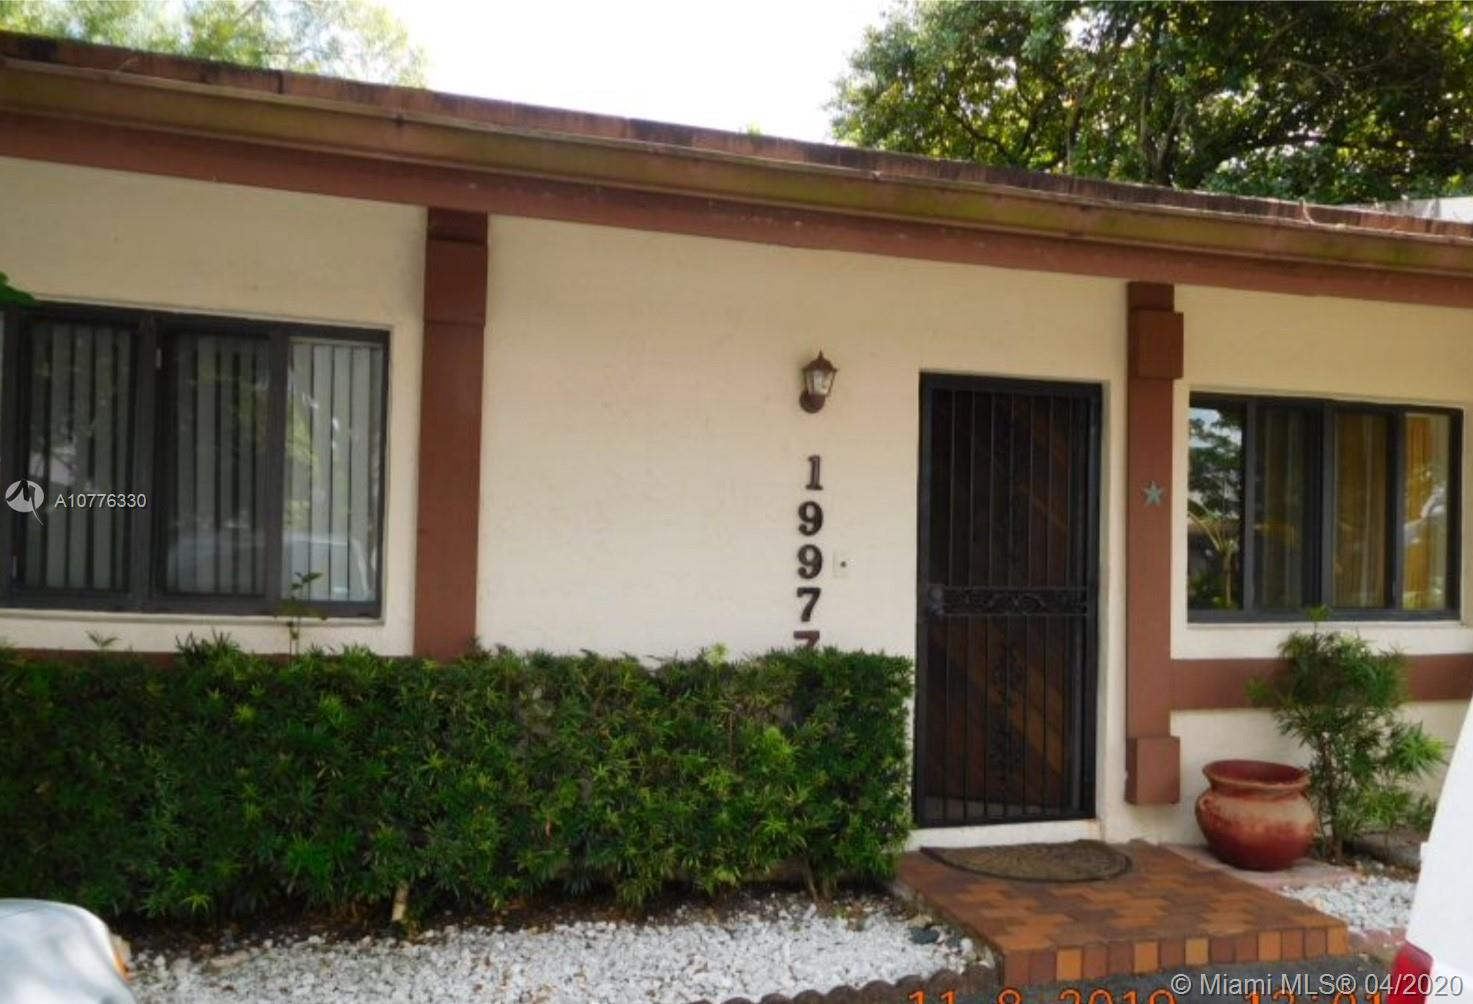 19977 NE 6th Court # Z8, Miami, Florida 33179, 2 Bedrooms Bedrooms, ,2 BathroomsBathrooms,Residential,For Sale,19977 NE 6th Court # Z8,A10776330